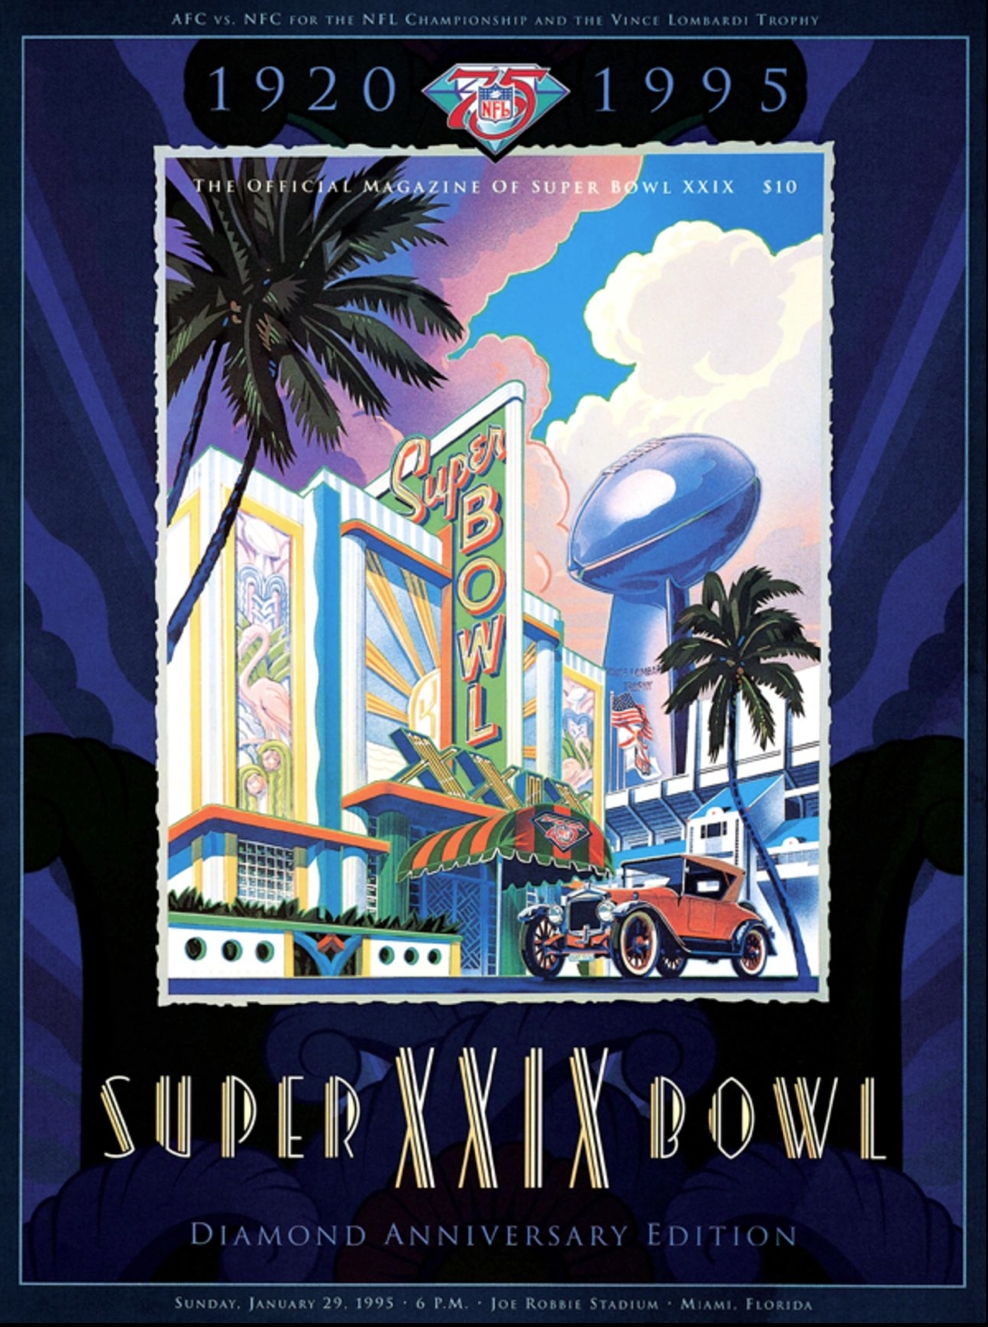 Packerville, U.s.a.: Super Bowl Game Programs • Part Iii within Miami Super Bowl Ticket Prices